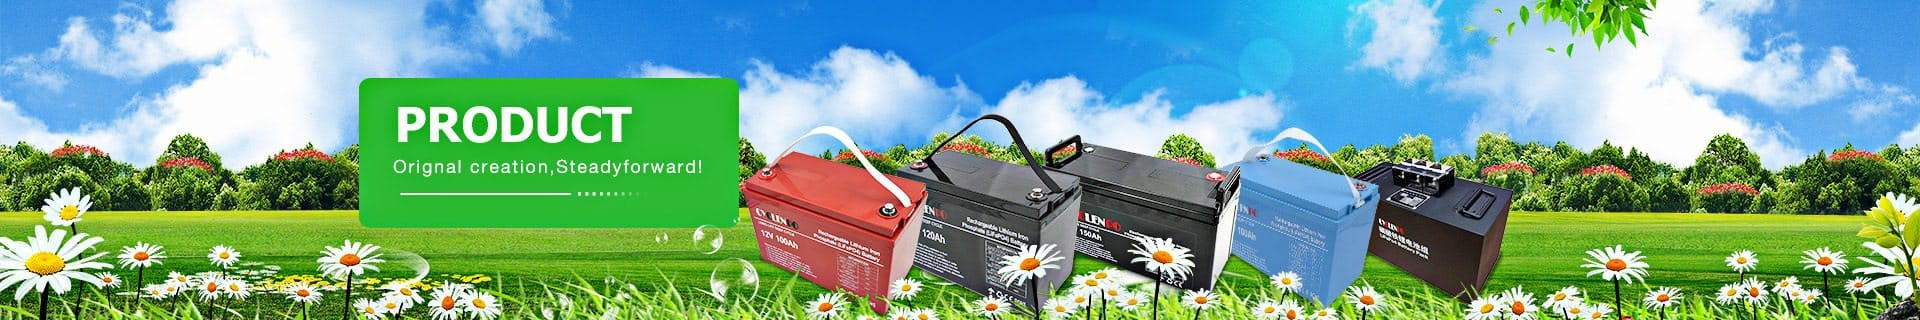 portable power supply, portable power supply for camping, 12v power supply